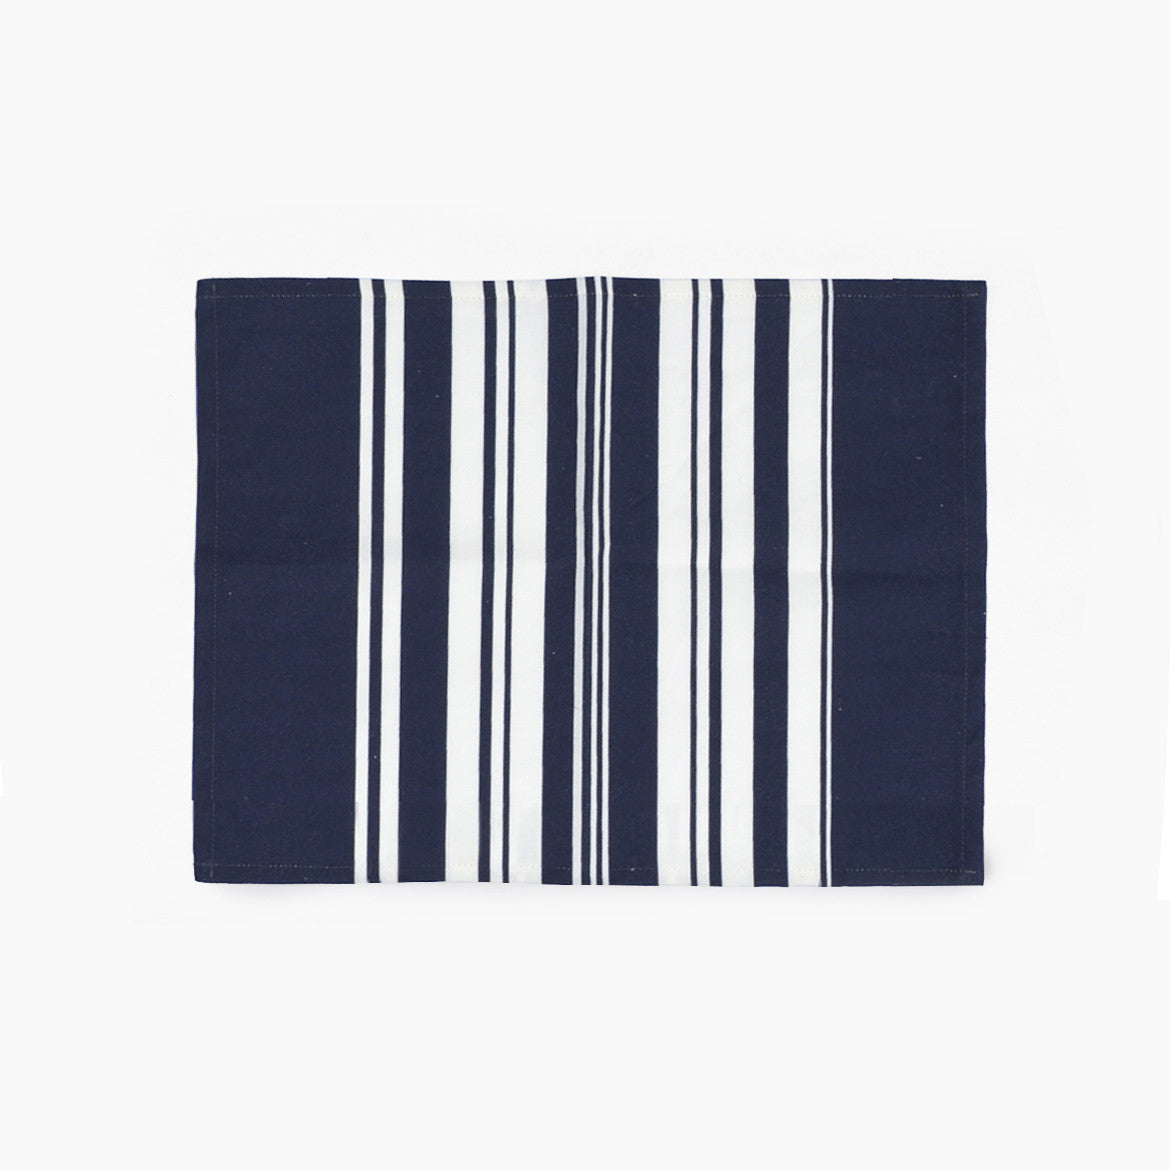 Bungalo Simple Stripe Placemat Napkin Navy Blue